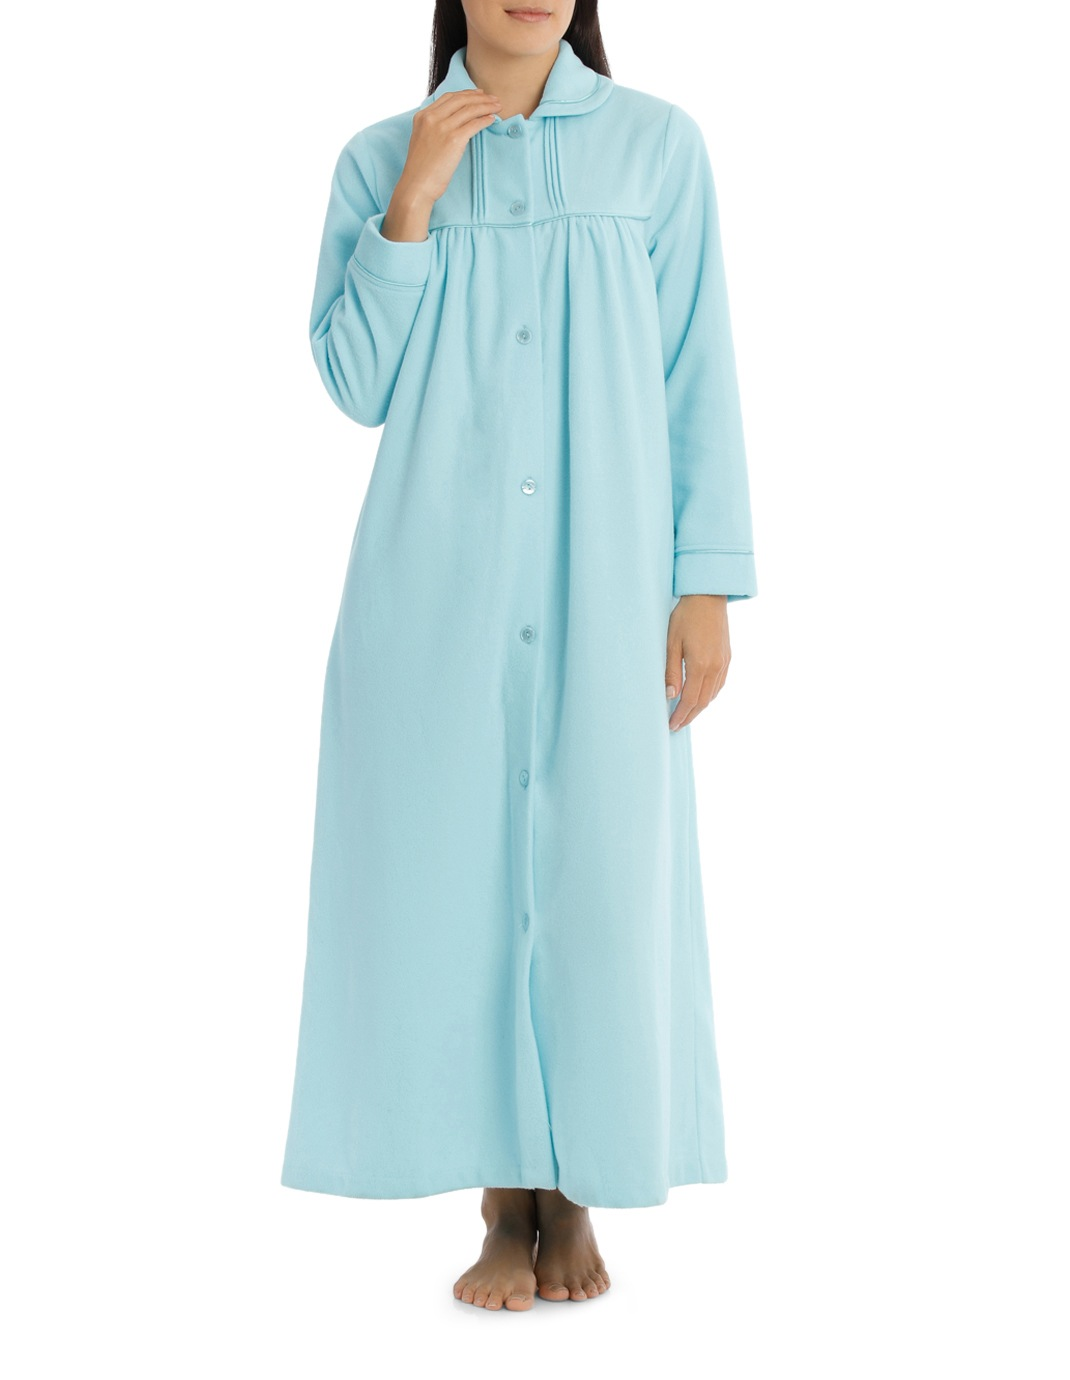 Givoni | \'Highpile\' Long Button Up Gown 7GB81 | Myer Online